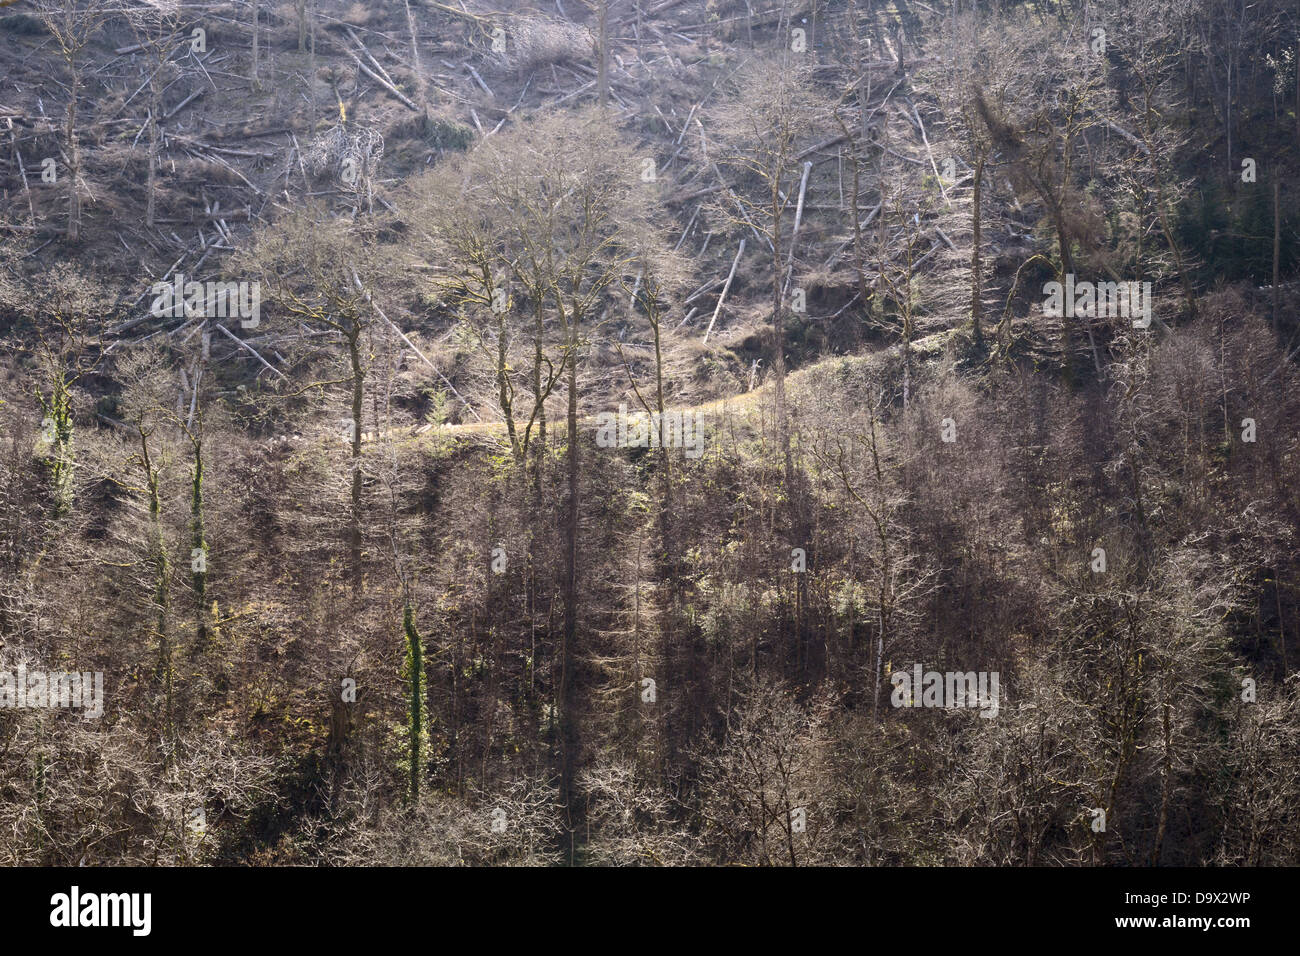 Land cleared as fell to waste, restoring conifer forest to Semi Natural woodland with regenerating land below, Spring, - Stock Image